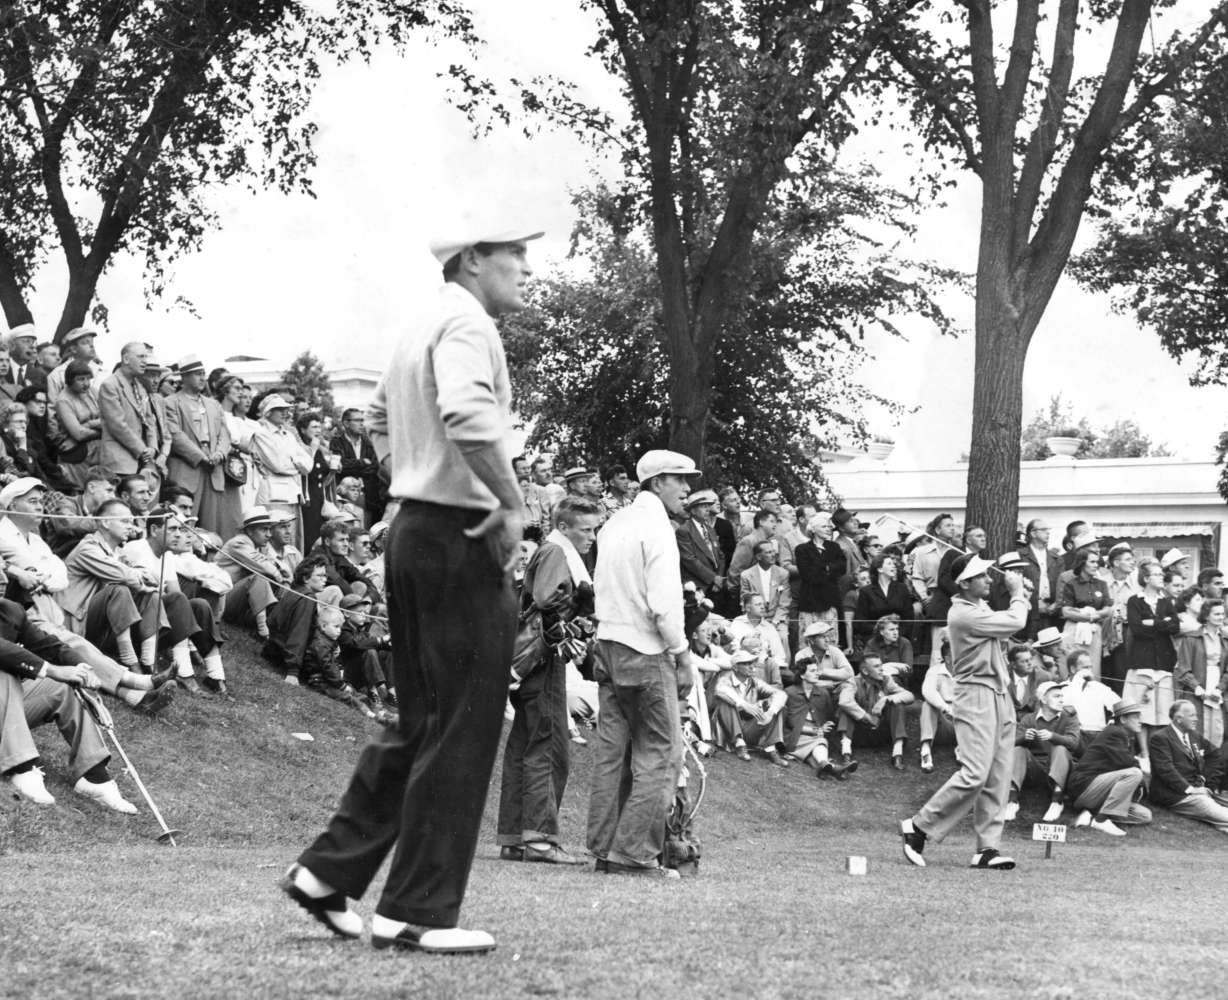 Frank Stranahan: Golf's Original Iron Man